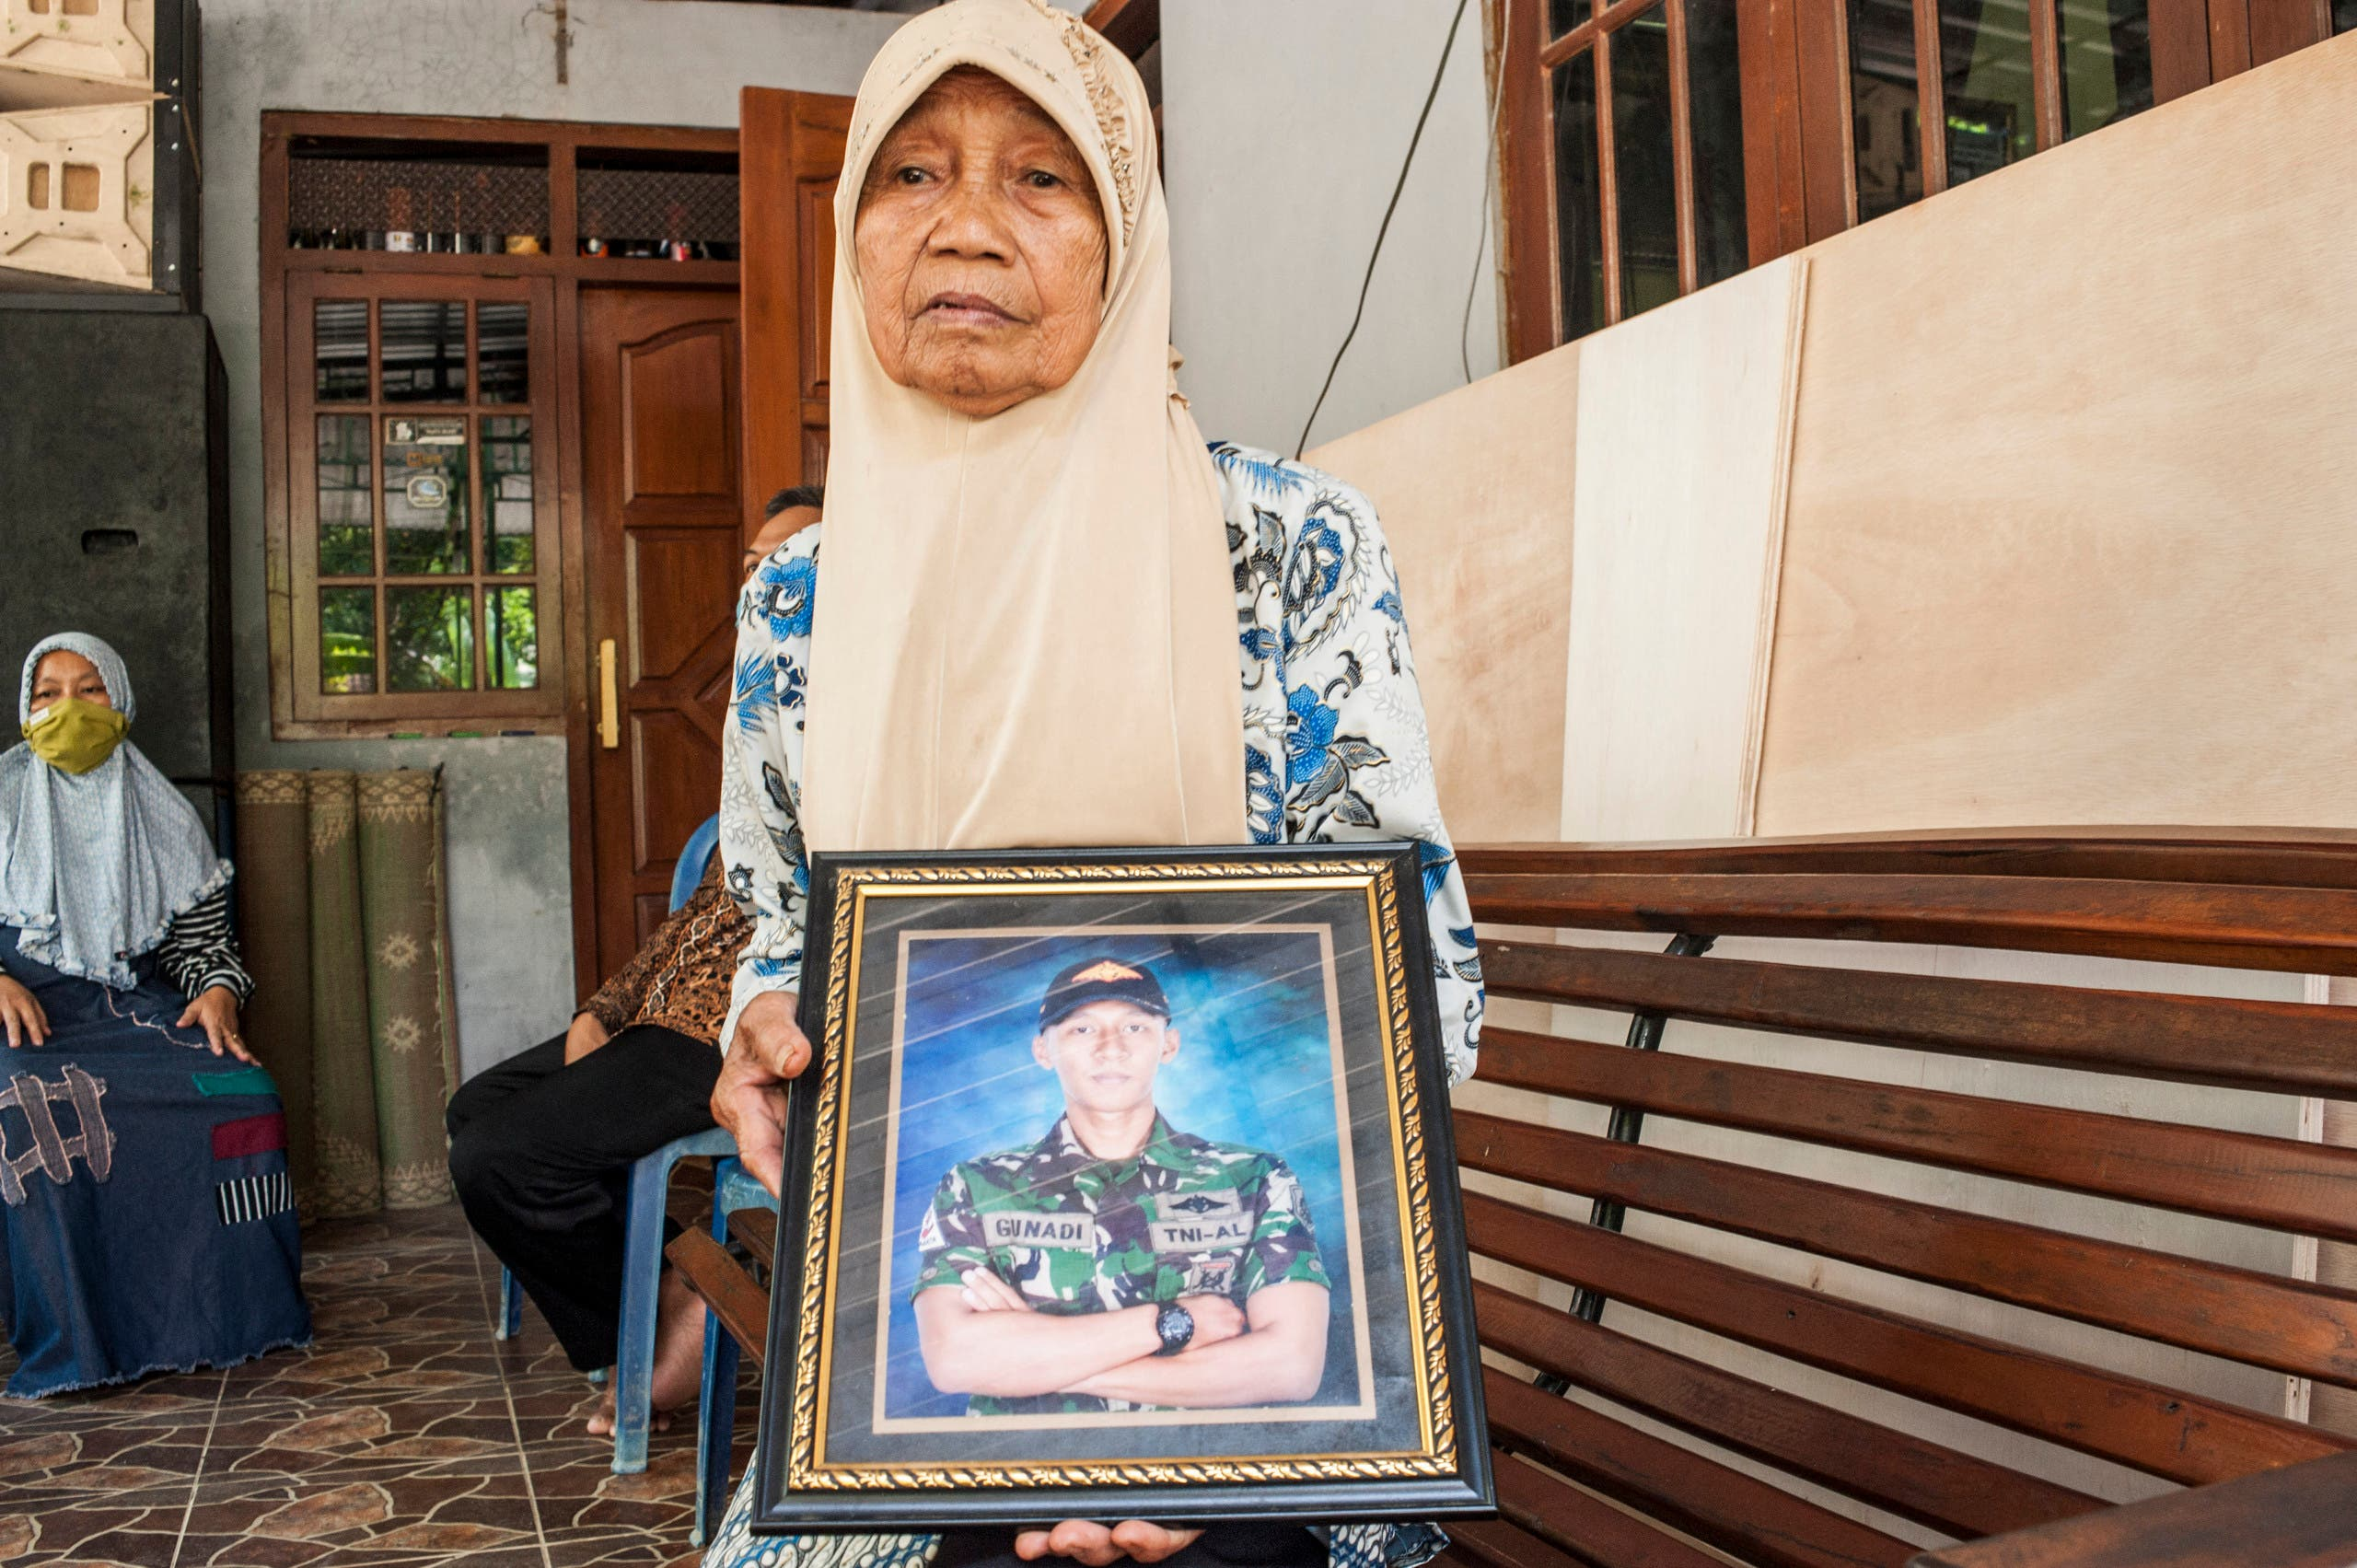 Sarikem holds a photo of her grandson Gunadi Fajar Rahmanto at their home in Yogyakarta on April 26, 2021, a crew member of the submarine that disappeared off the coast of Bali and has been found cracked into pieces on the seafloor with all 53 crew killed in the disaster. (File photo: AFP)